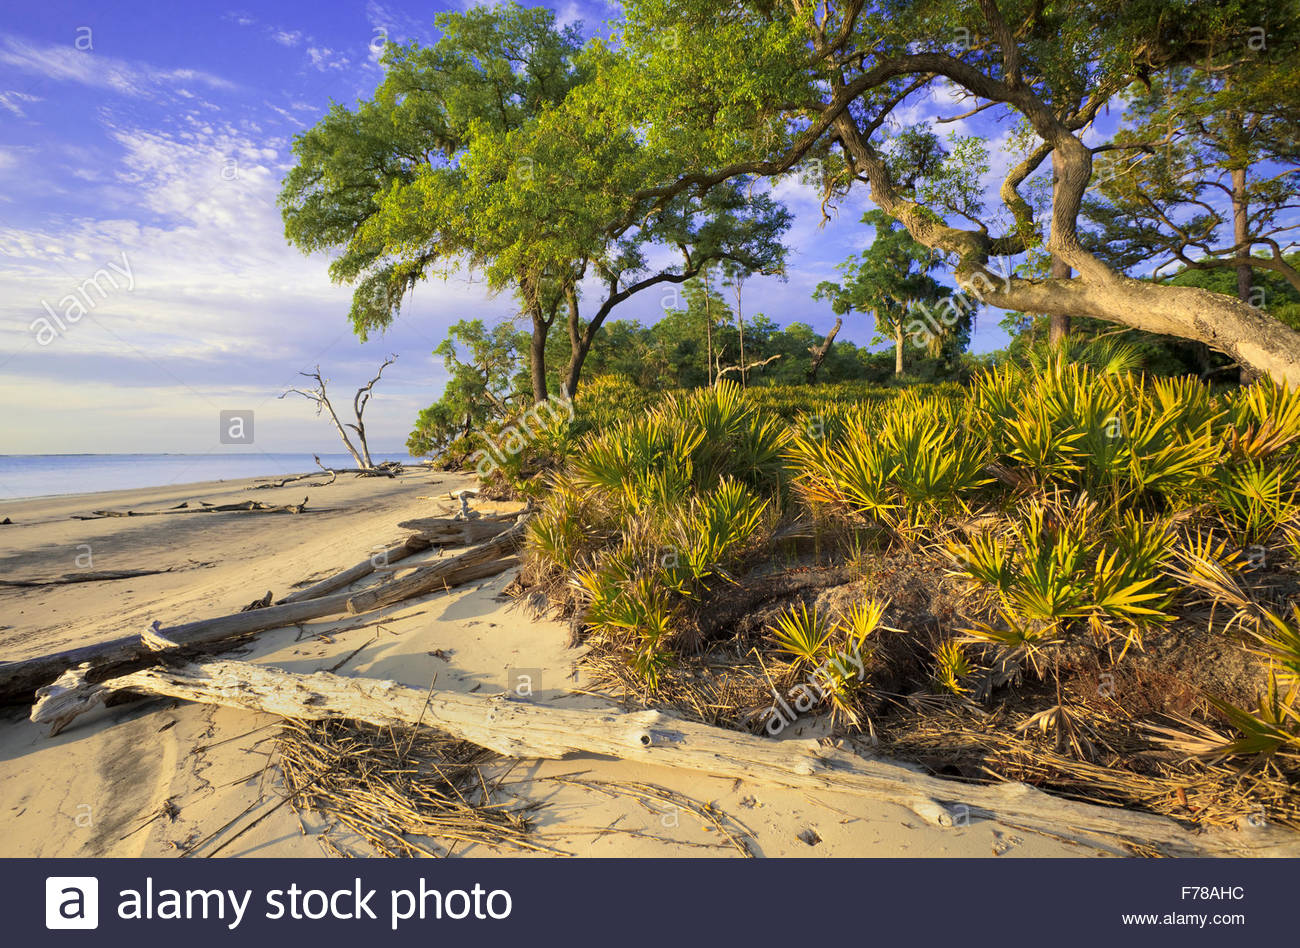 Beach with Saw palmetto and Sand live oak, St. Catherine's Island, Georgia. Stock Photo